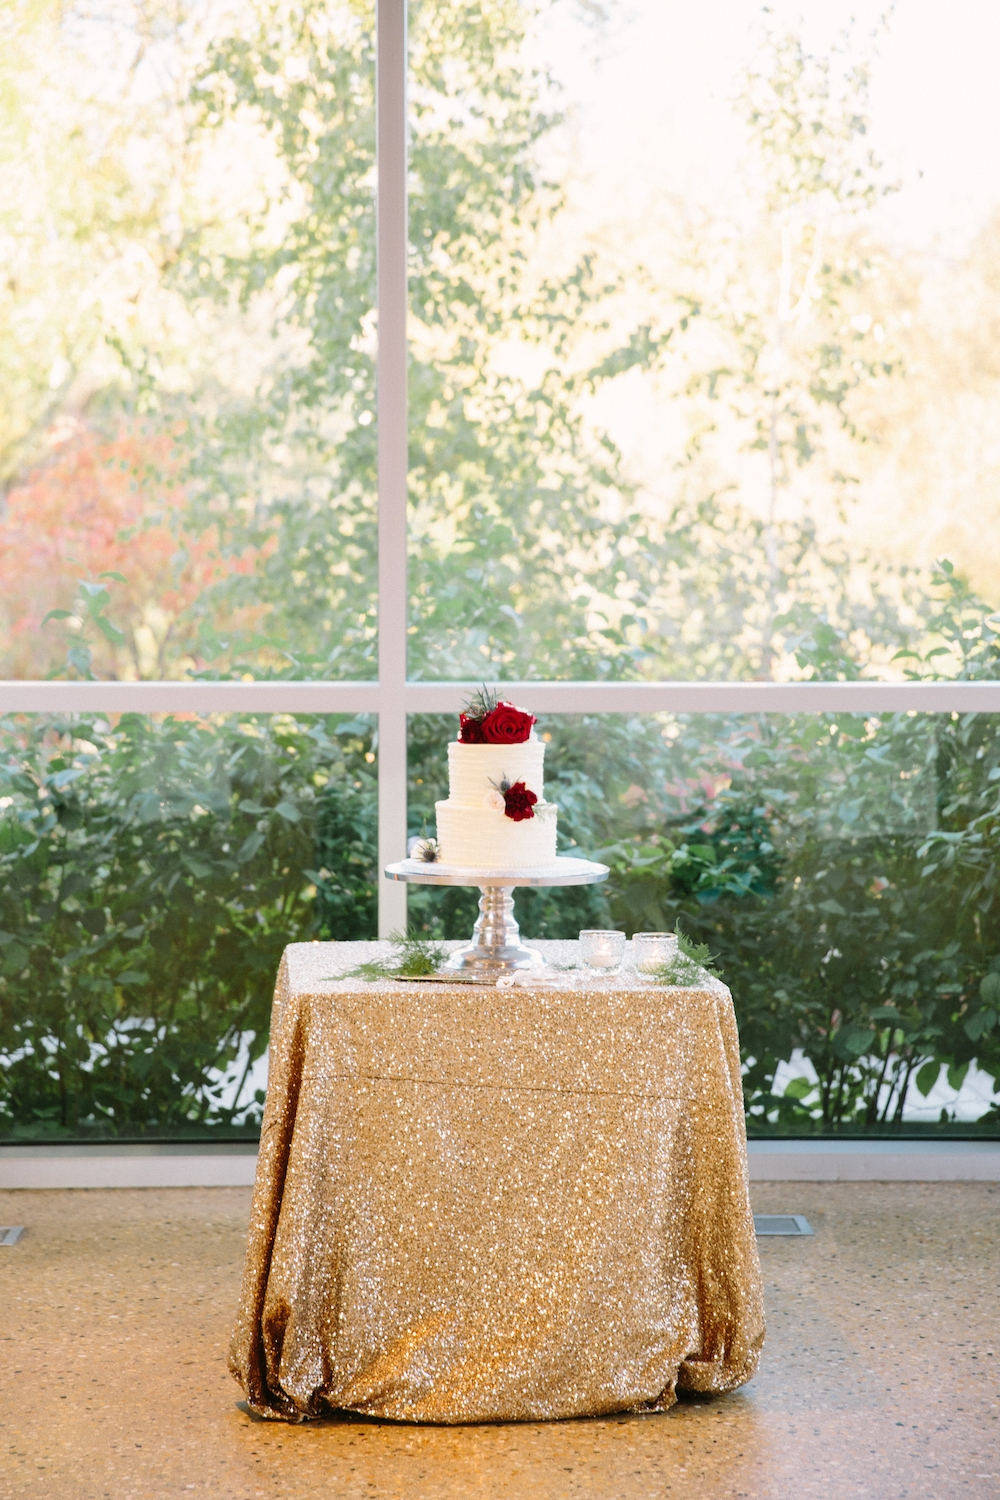 Photo by Rachwal Photography, Cake by High Tea Bakery